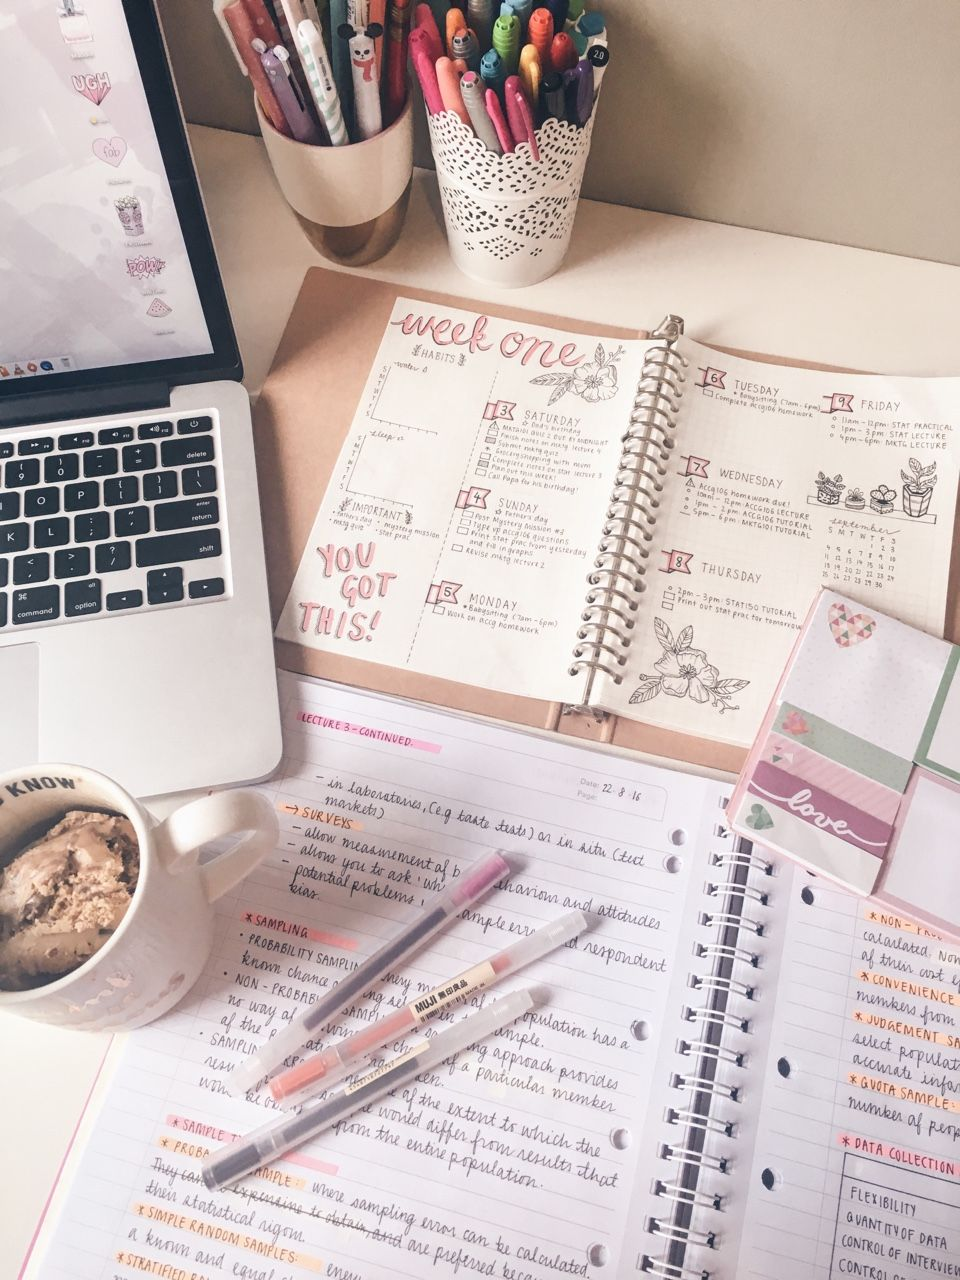 """the-girlygeek: """" 3.9.16 // Nibbling on some coffee ice cream while I catch up on my marketing notes. ✌️ I spent most of the morning working on my weekly spread, but I'm going out to run some errands soon. Hopefully i'll still be productive when I..."""